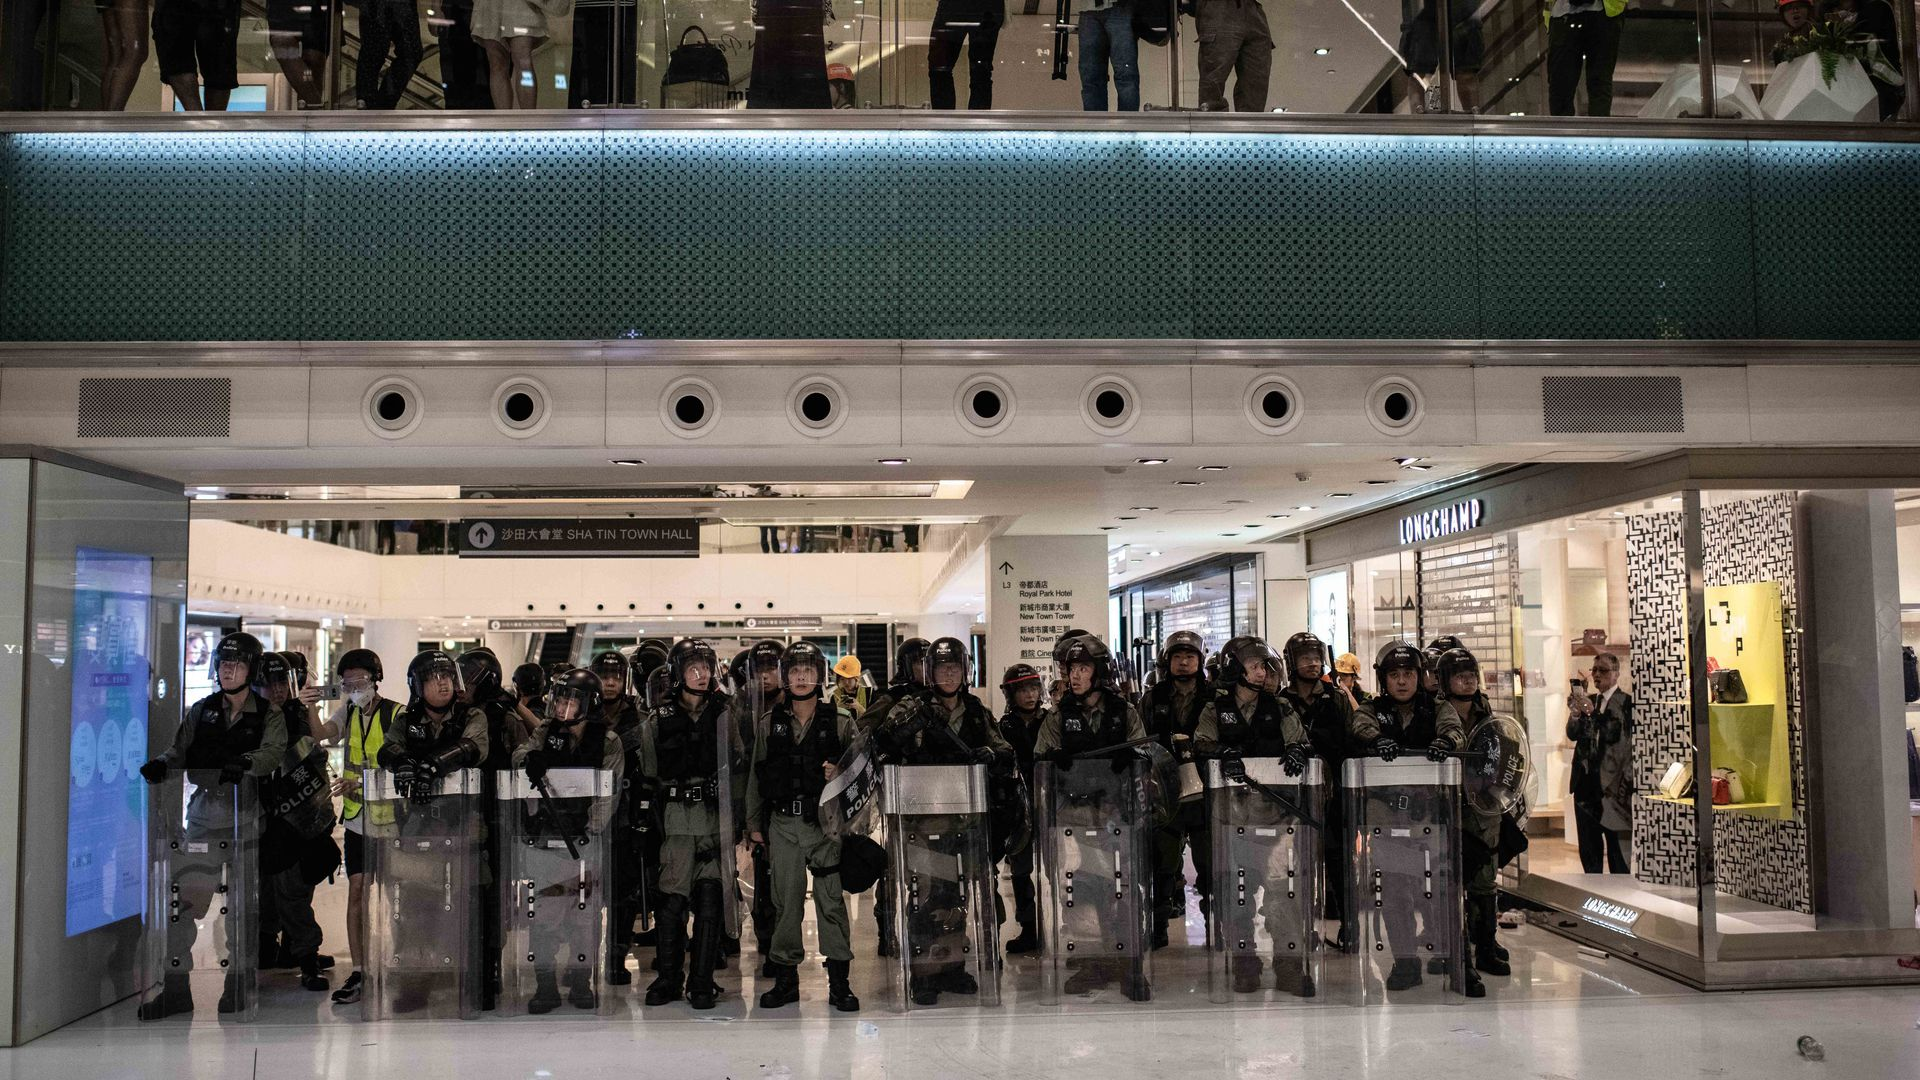 Businesses question if Hong Kong is safe after nearly 3 months of protest